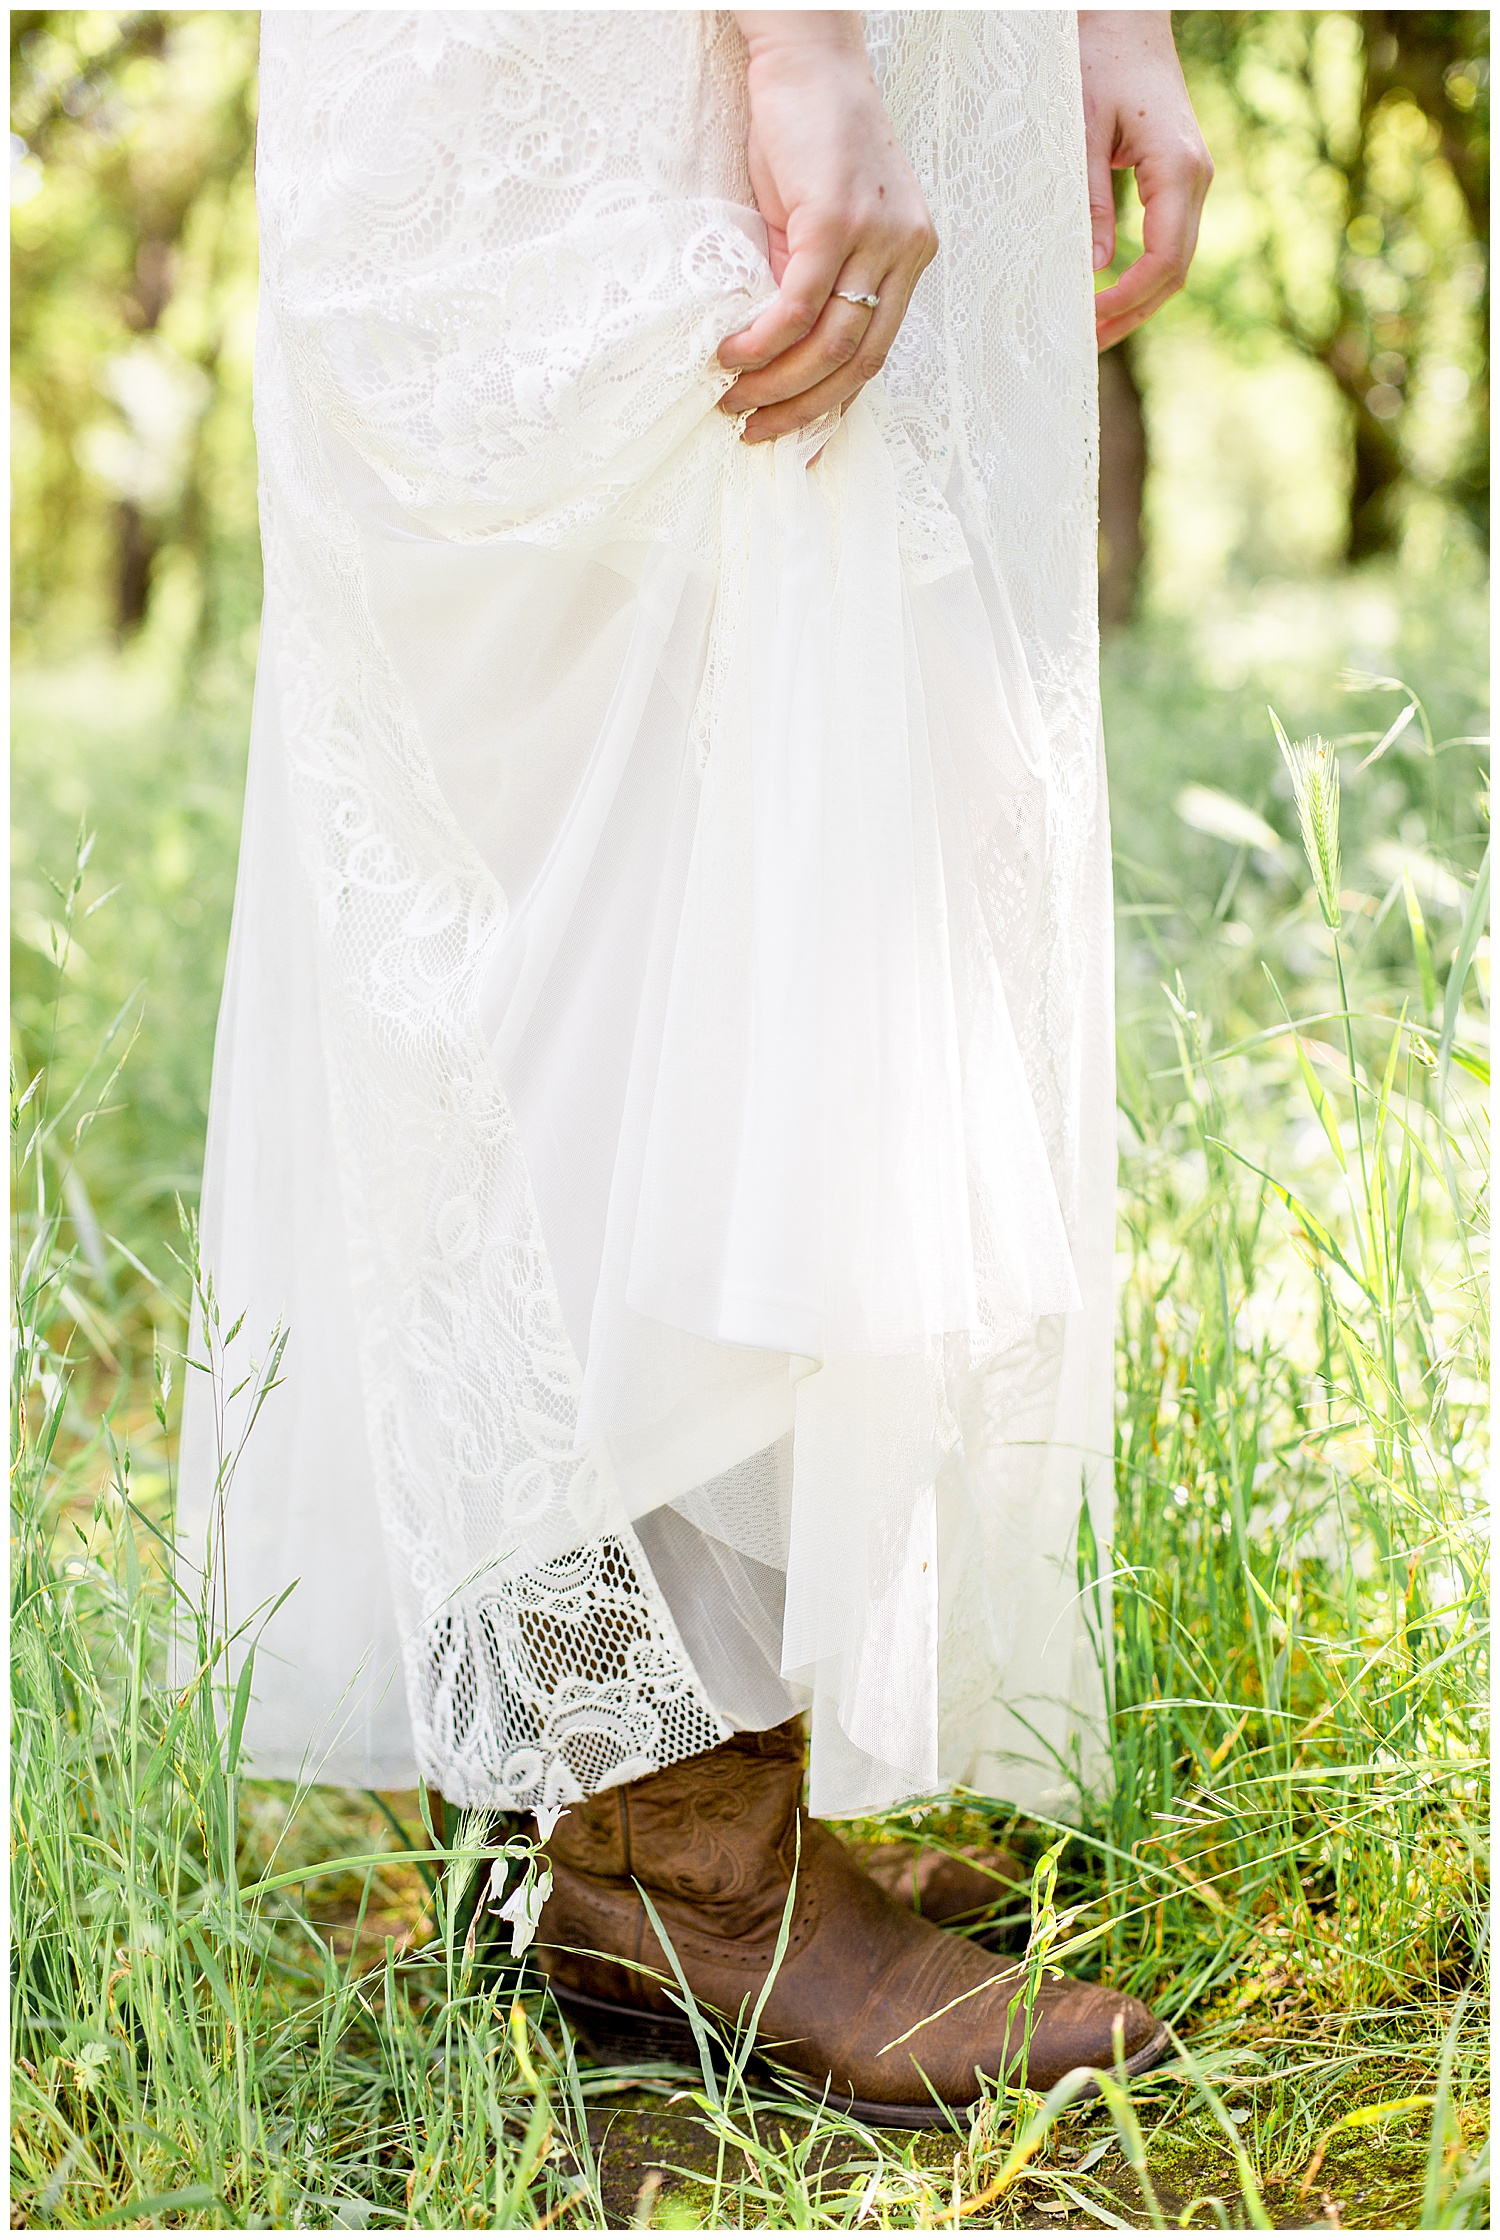 Country_Bridal_Portraits_Lace_Spring_Oregon_Photographer_Cowboy_Boots1.jpg